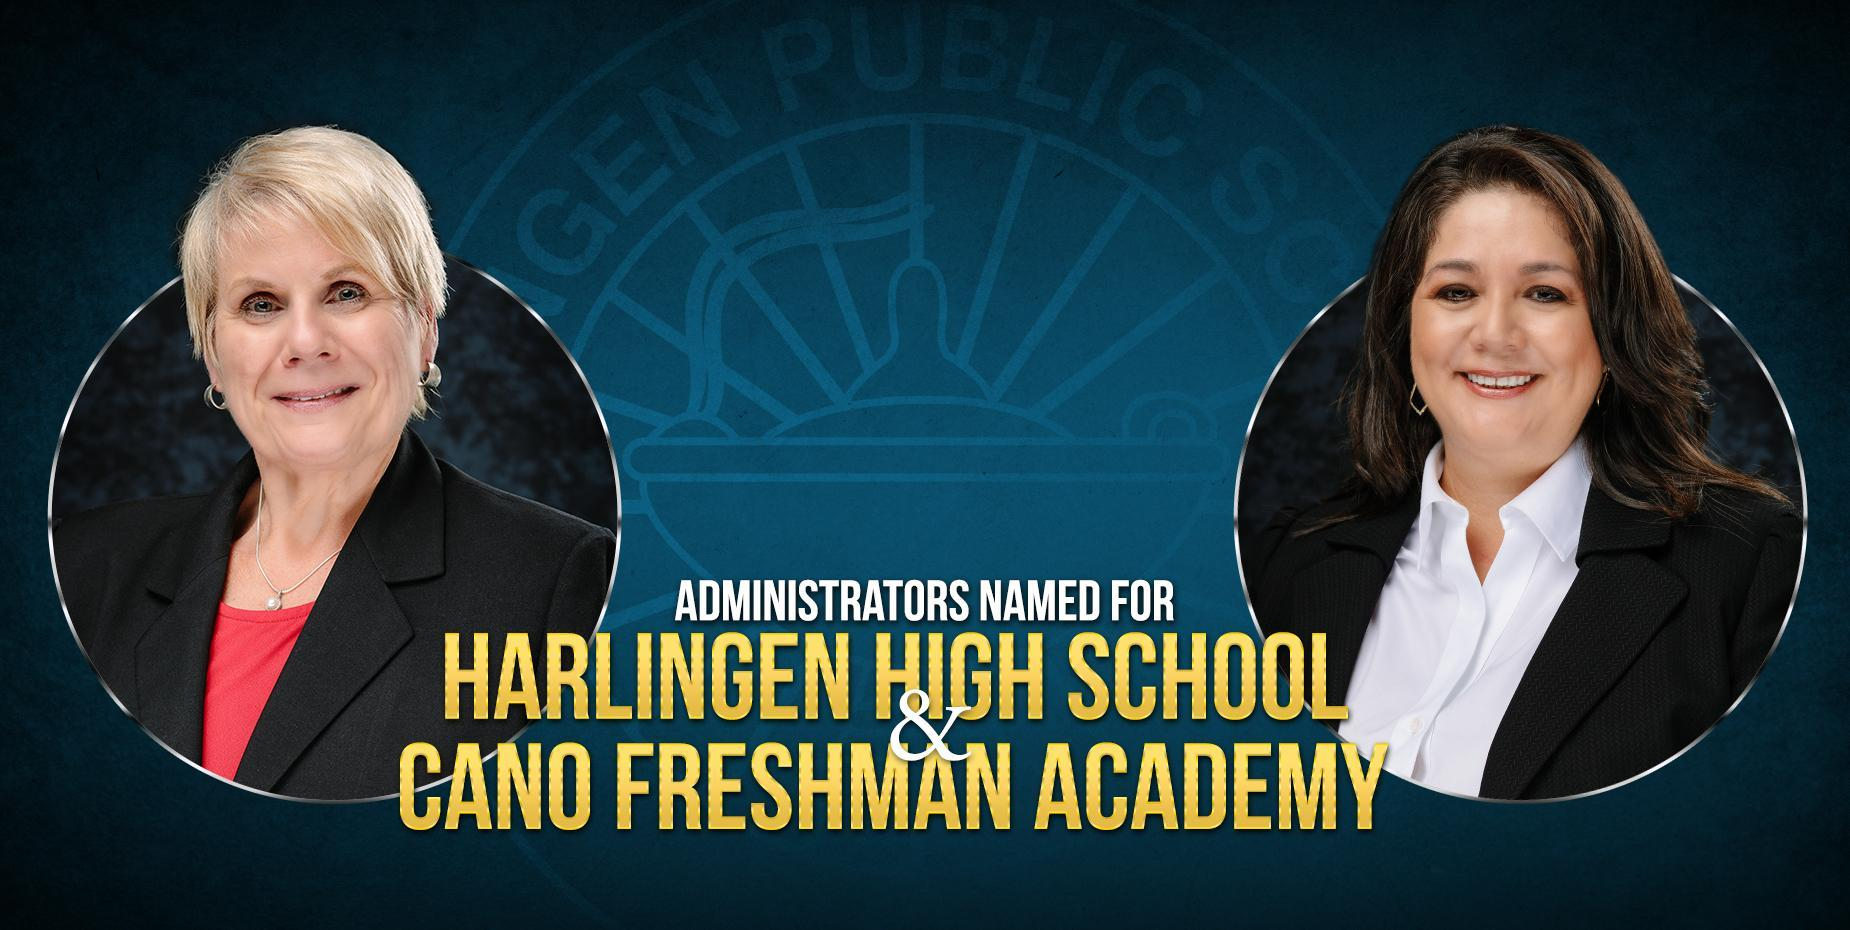 Two photos of high School administrators side by side with text saying harlingen high school and cano freshman academy